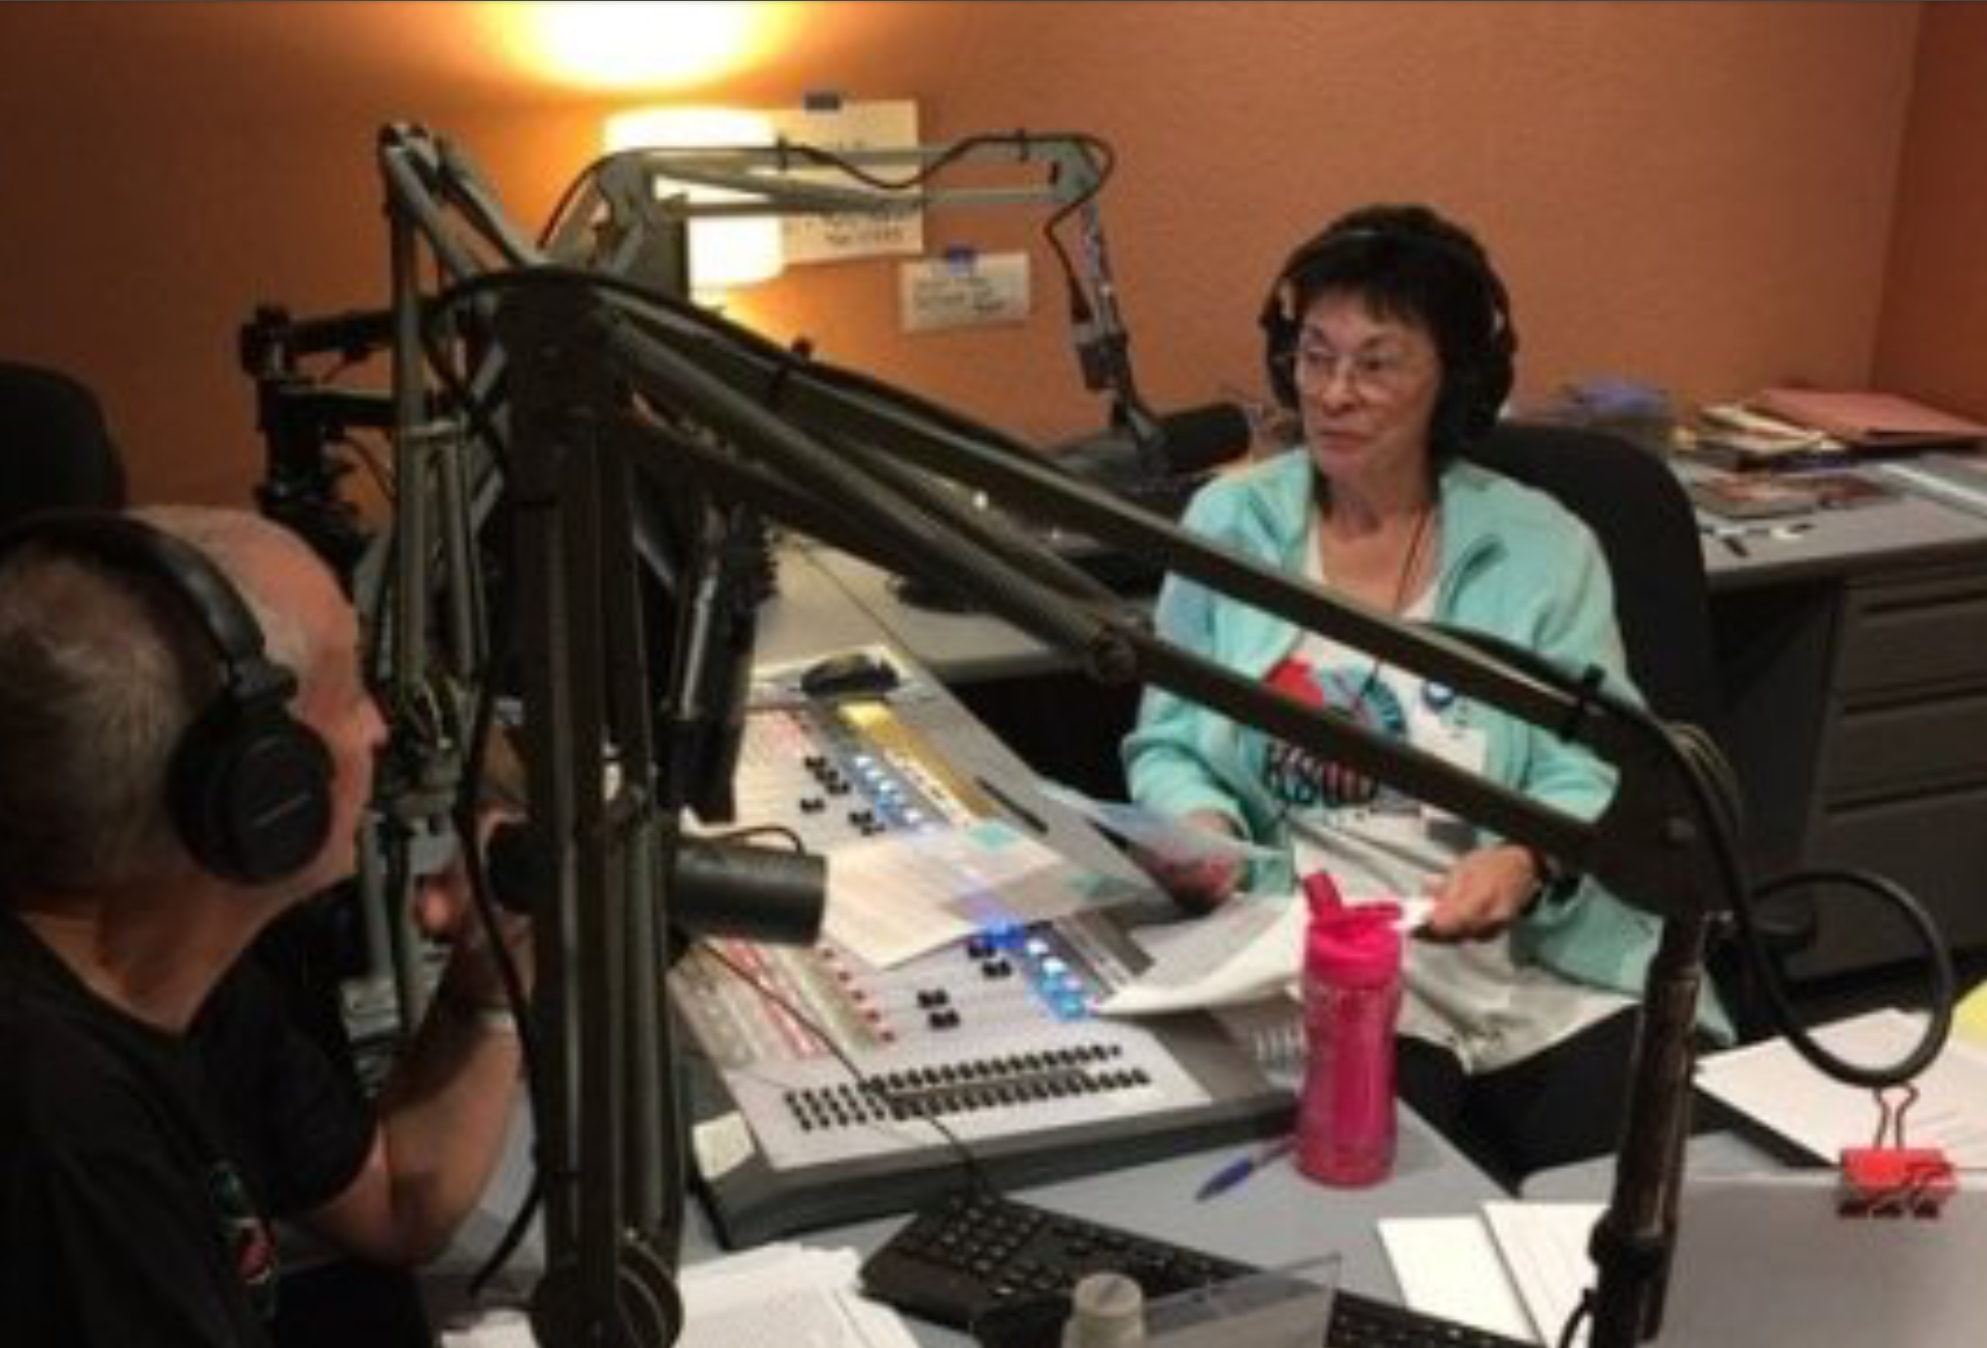 Jill Cody airs new radio show on KSQD